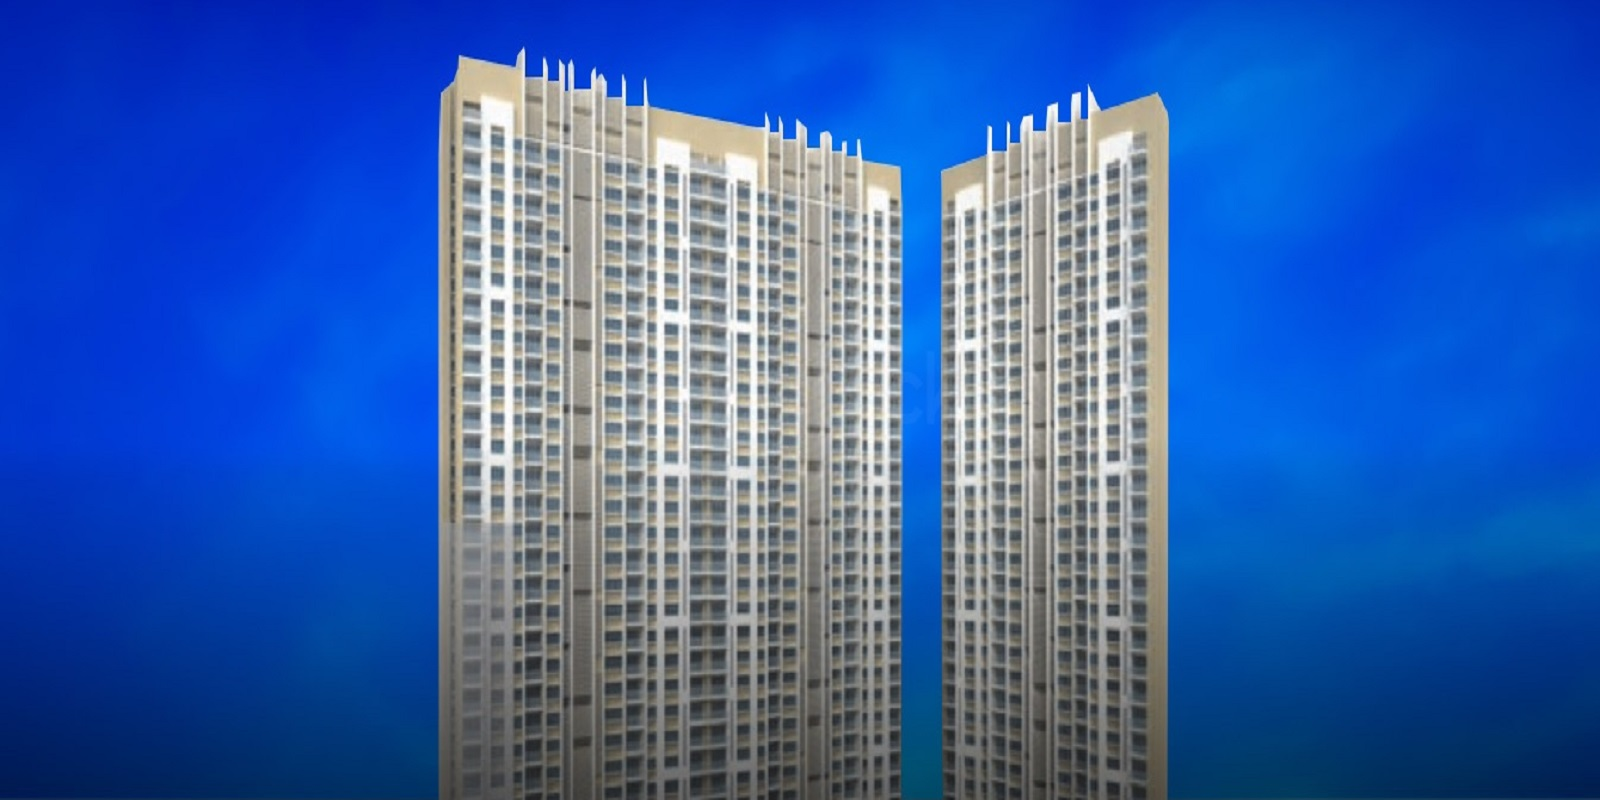 lodha augusta project large image1